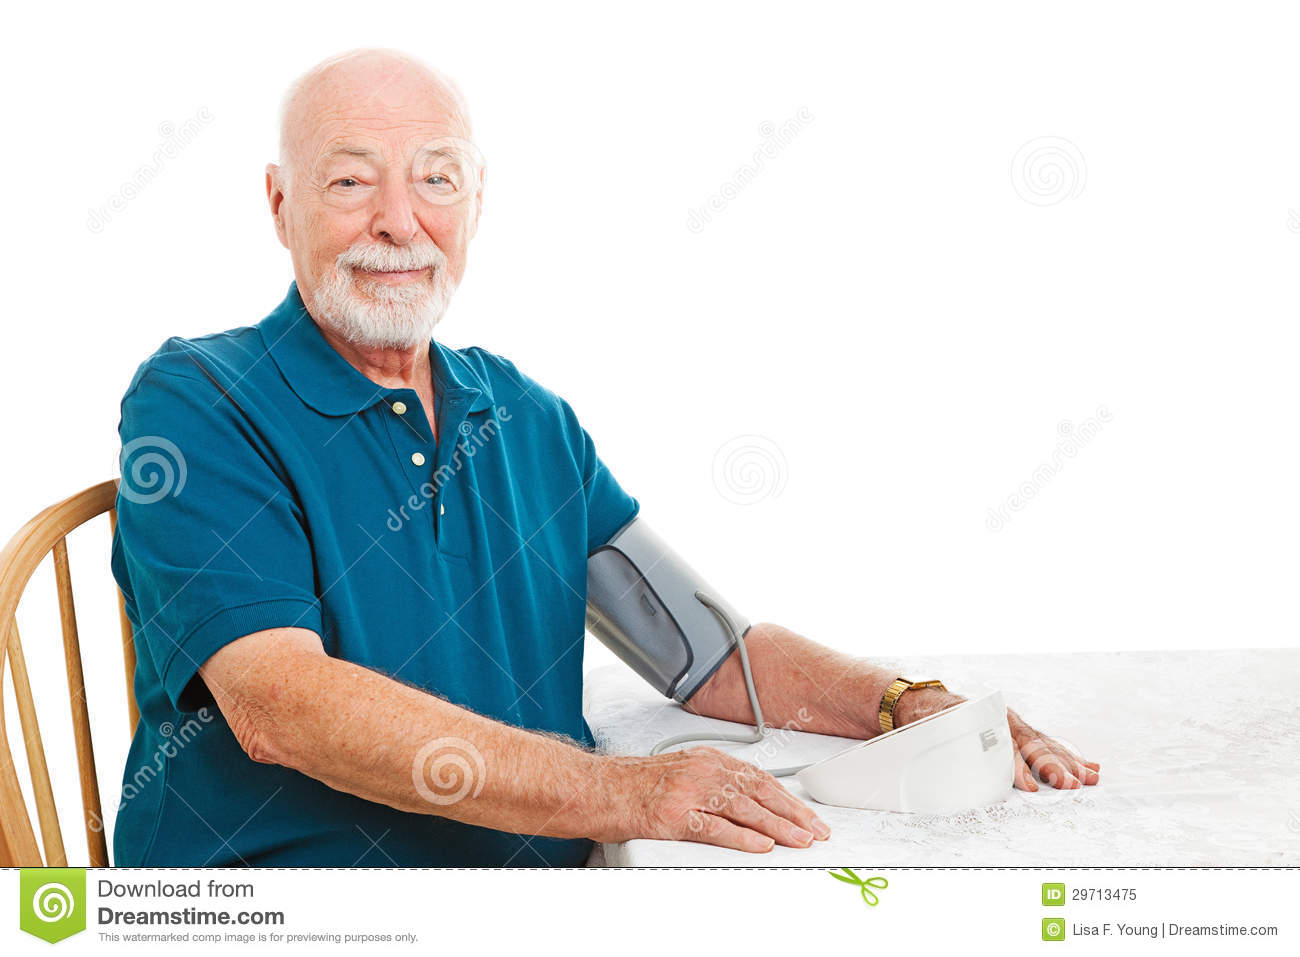 Home Blood Pressure Monitoring Stock Image Image 29713475